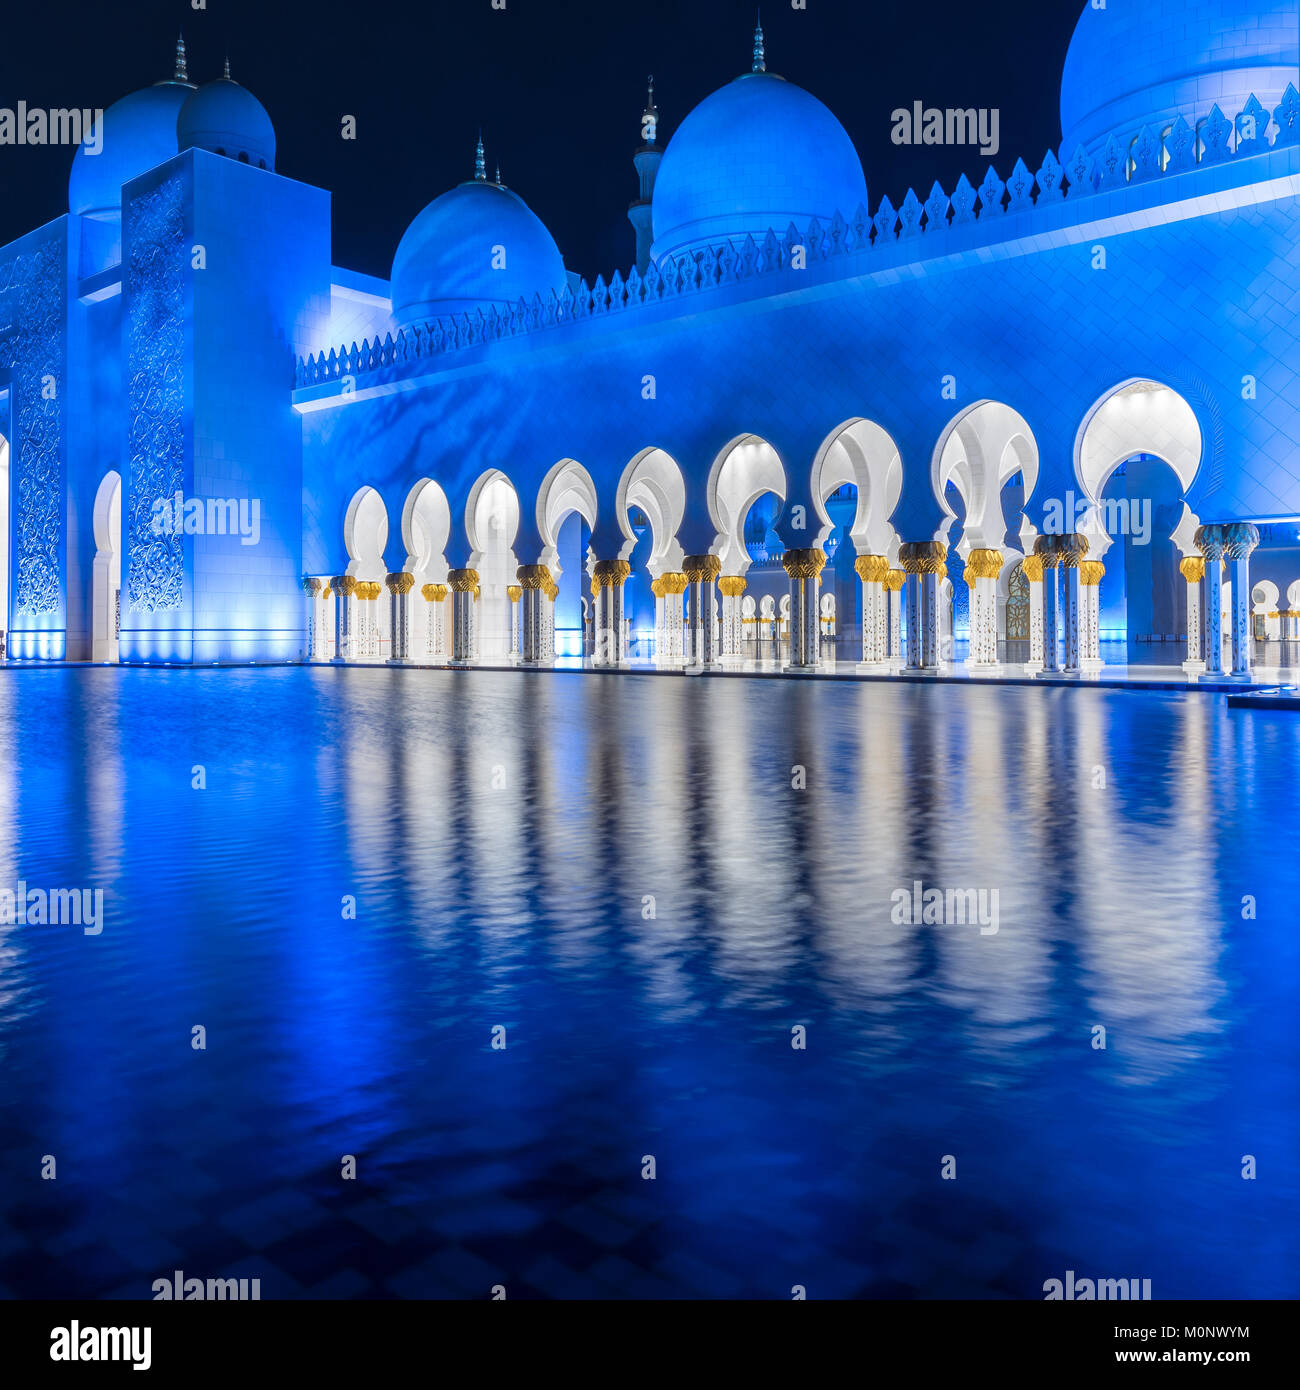 The architecture of the Sheikh Zayed Grand Mosque in Abu Dhabi, UAE - Stock Image